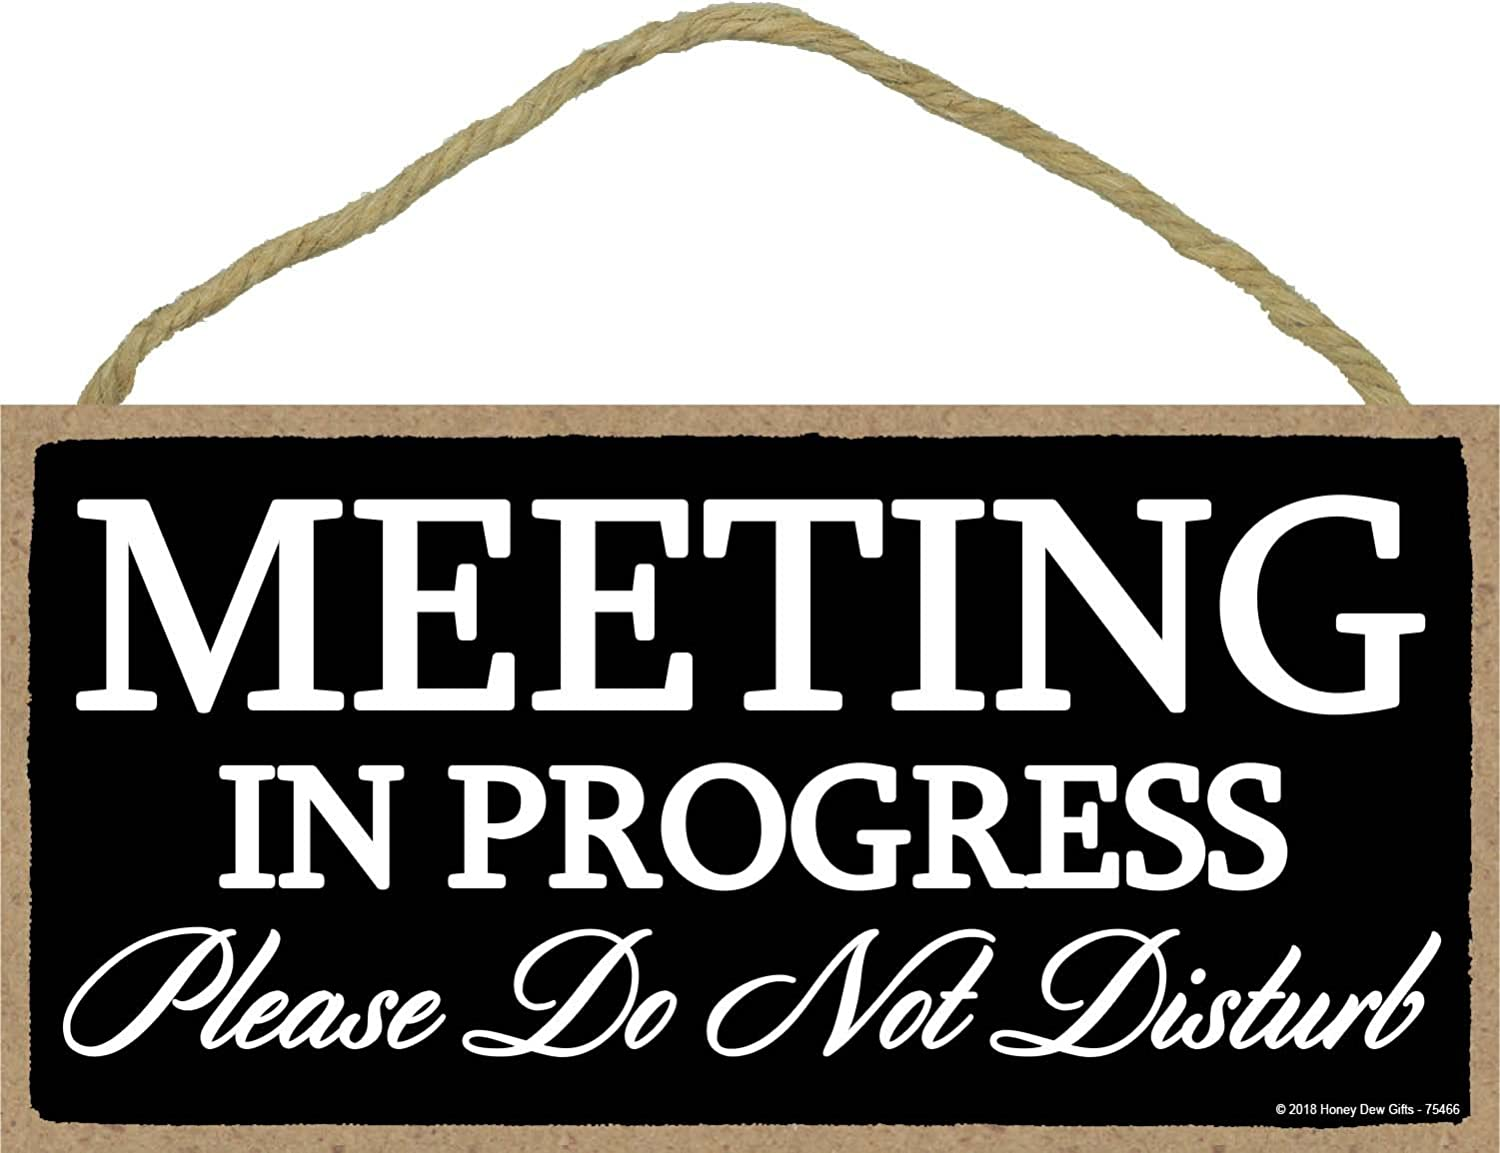 Honey Dew Gifts Meeting in Progress Please Do Not Disturb - 5 x 10 inch Hanging Door Sign for Office Commerical Use